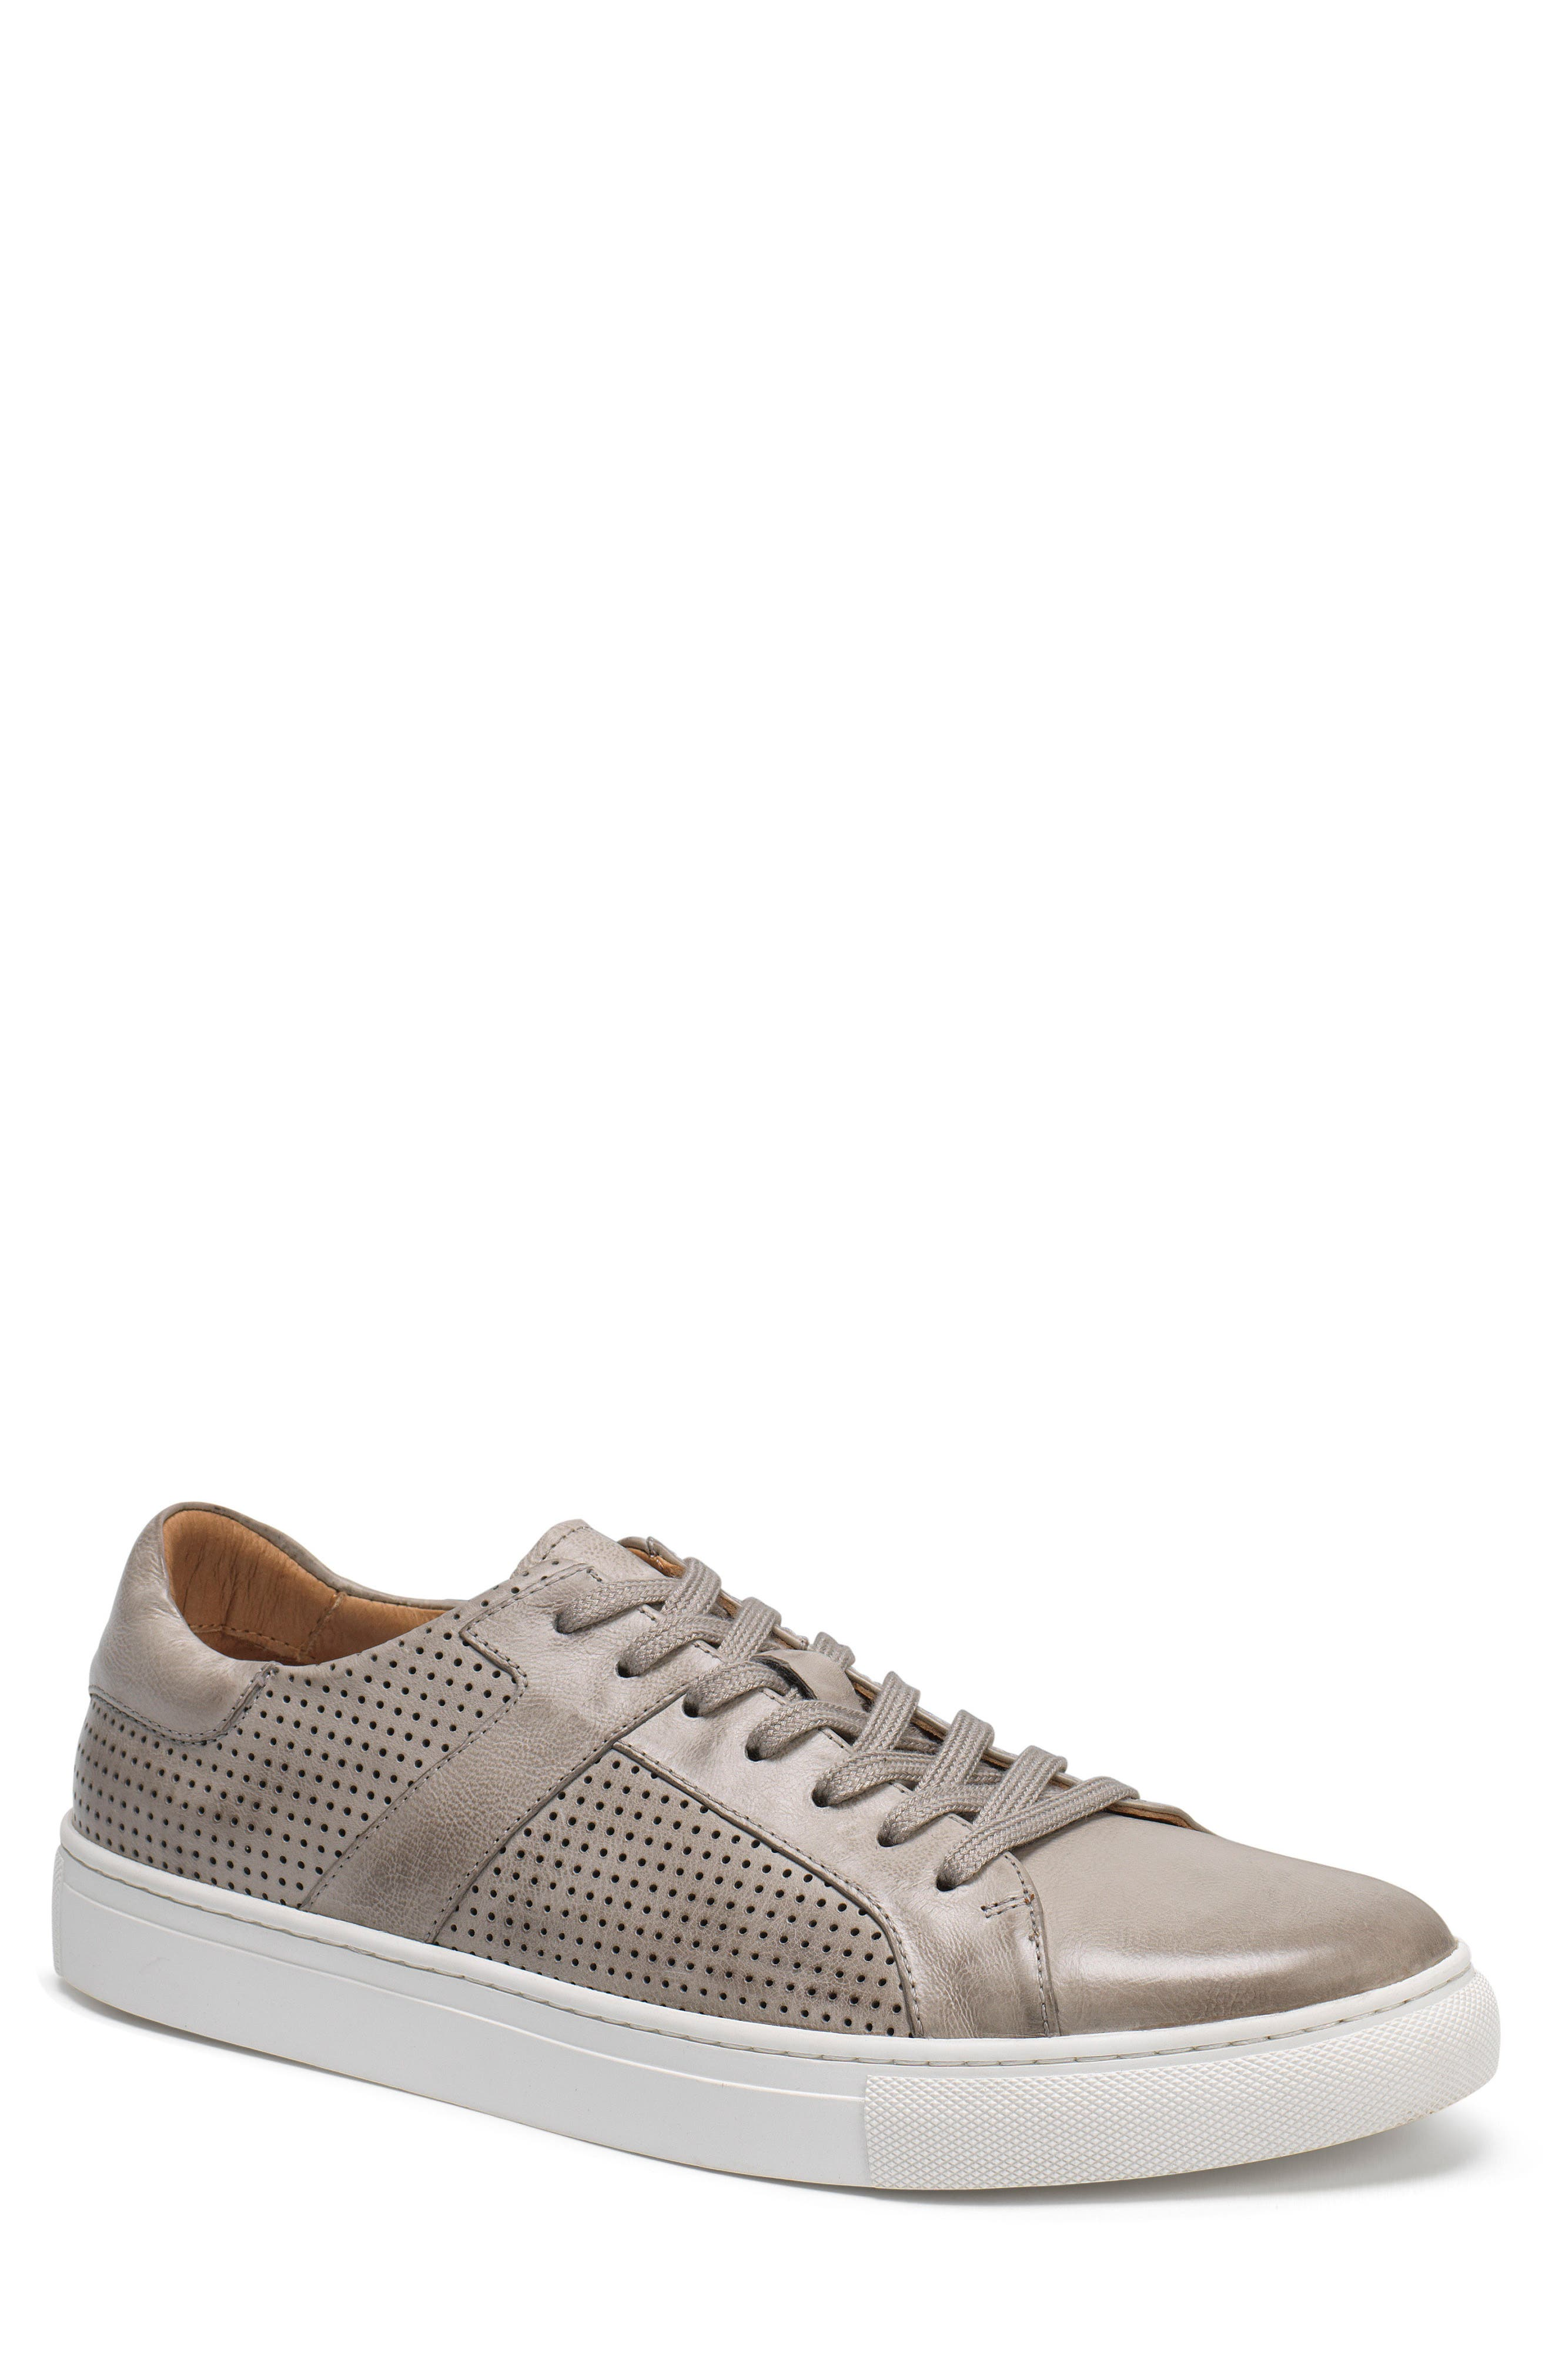 Aaron Sneaker,                         Main,                         color, Light Grey Leather